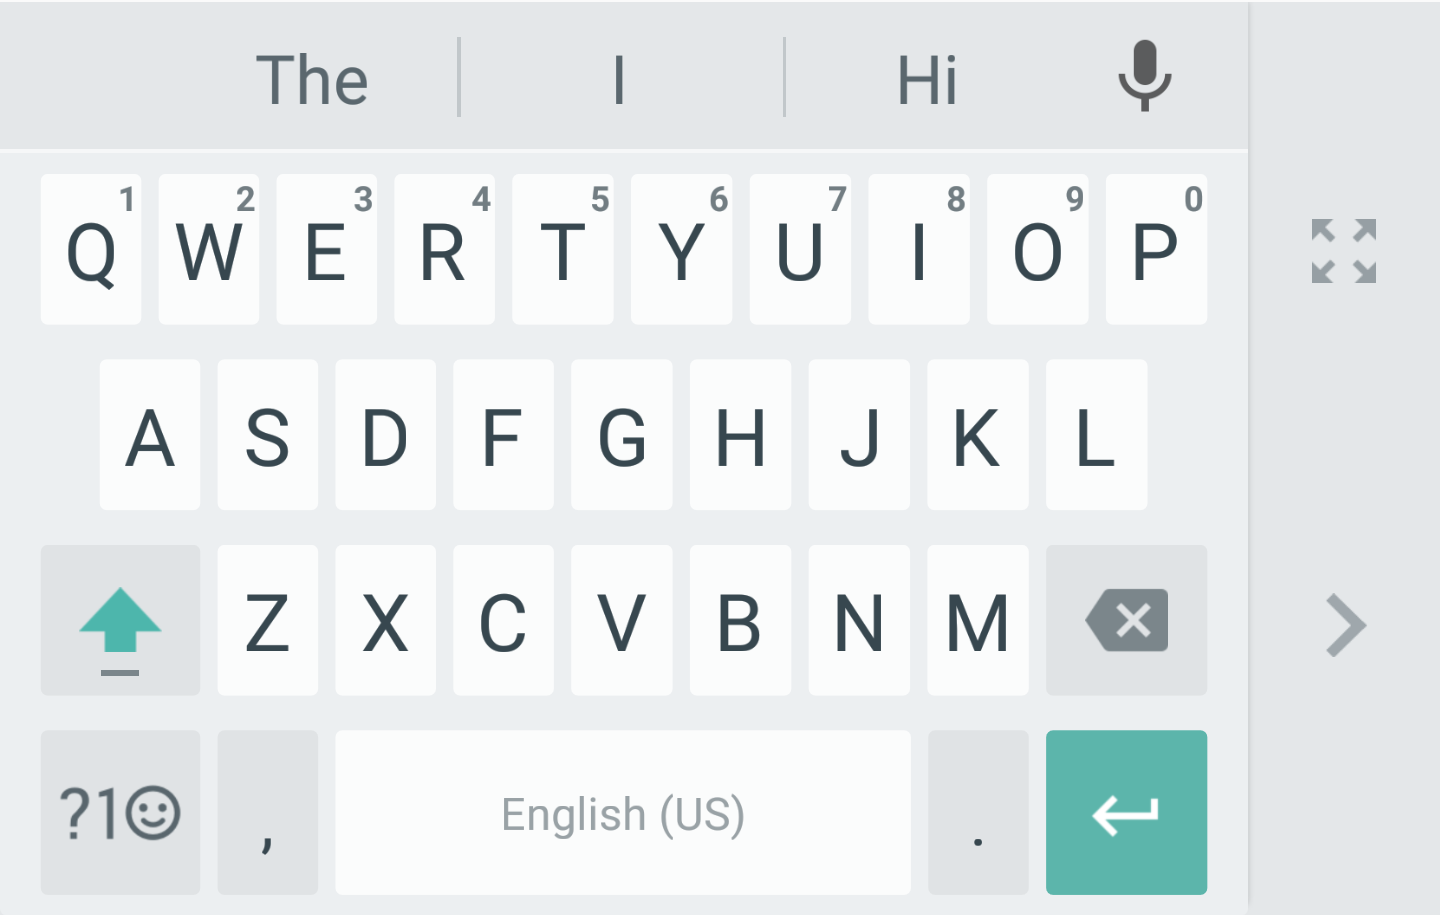 4f4de759984 Google Keyboard Gets A Huge Update To v5.0 With One-Handed Mode, Optional  Key Borders, New Gestures, And More [APK Download]